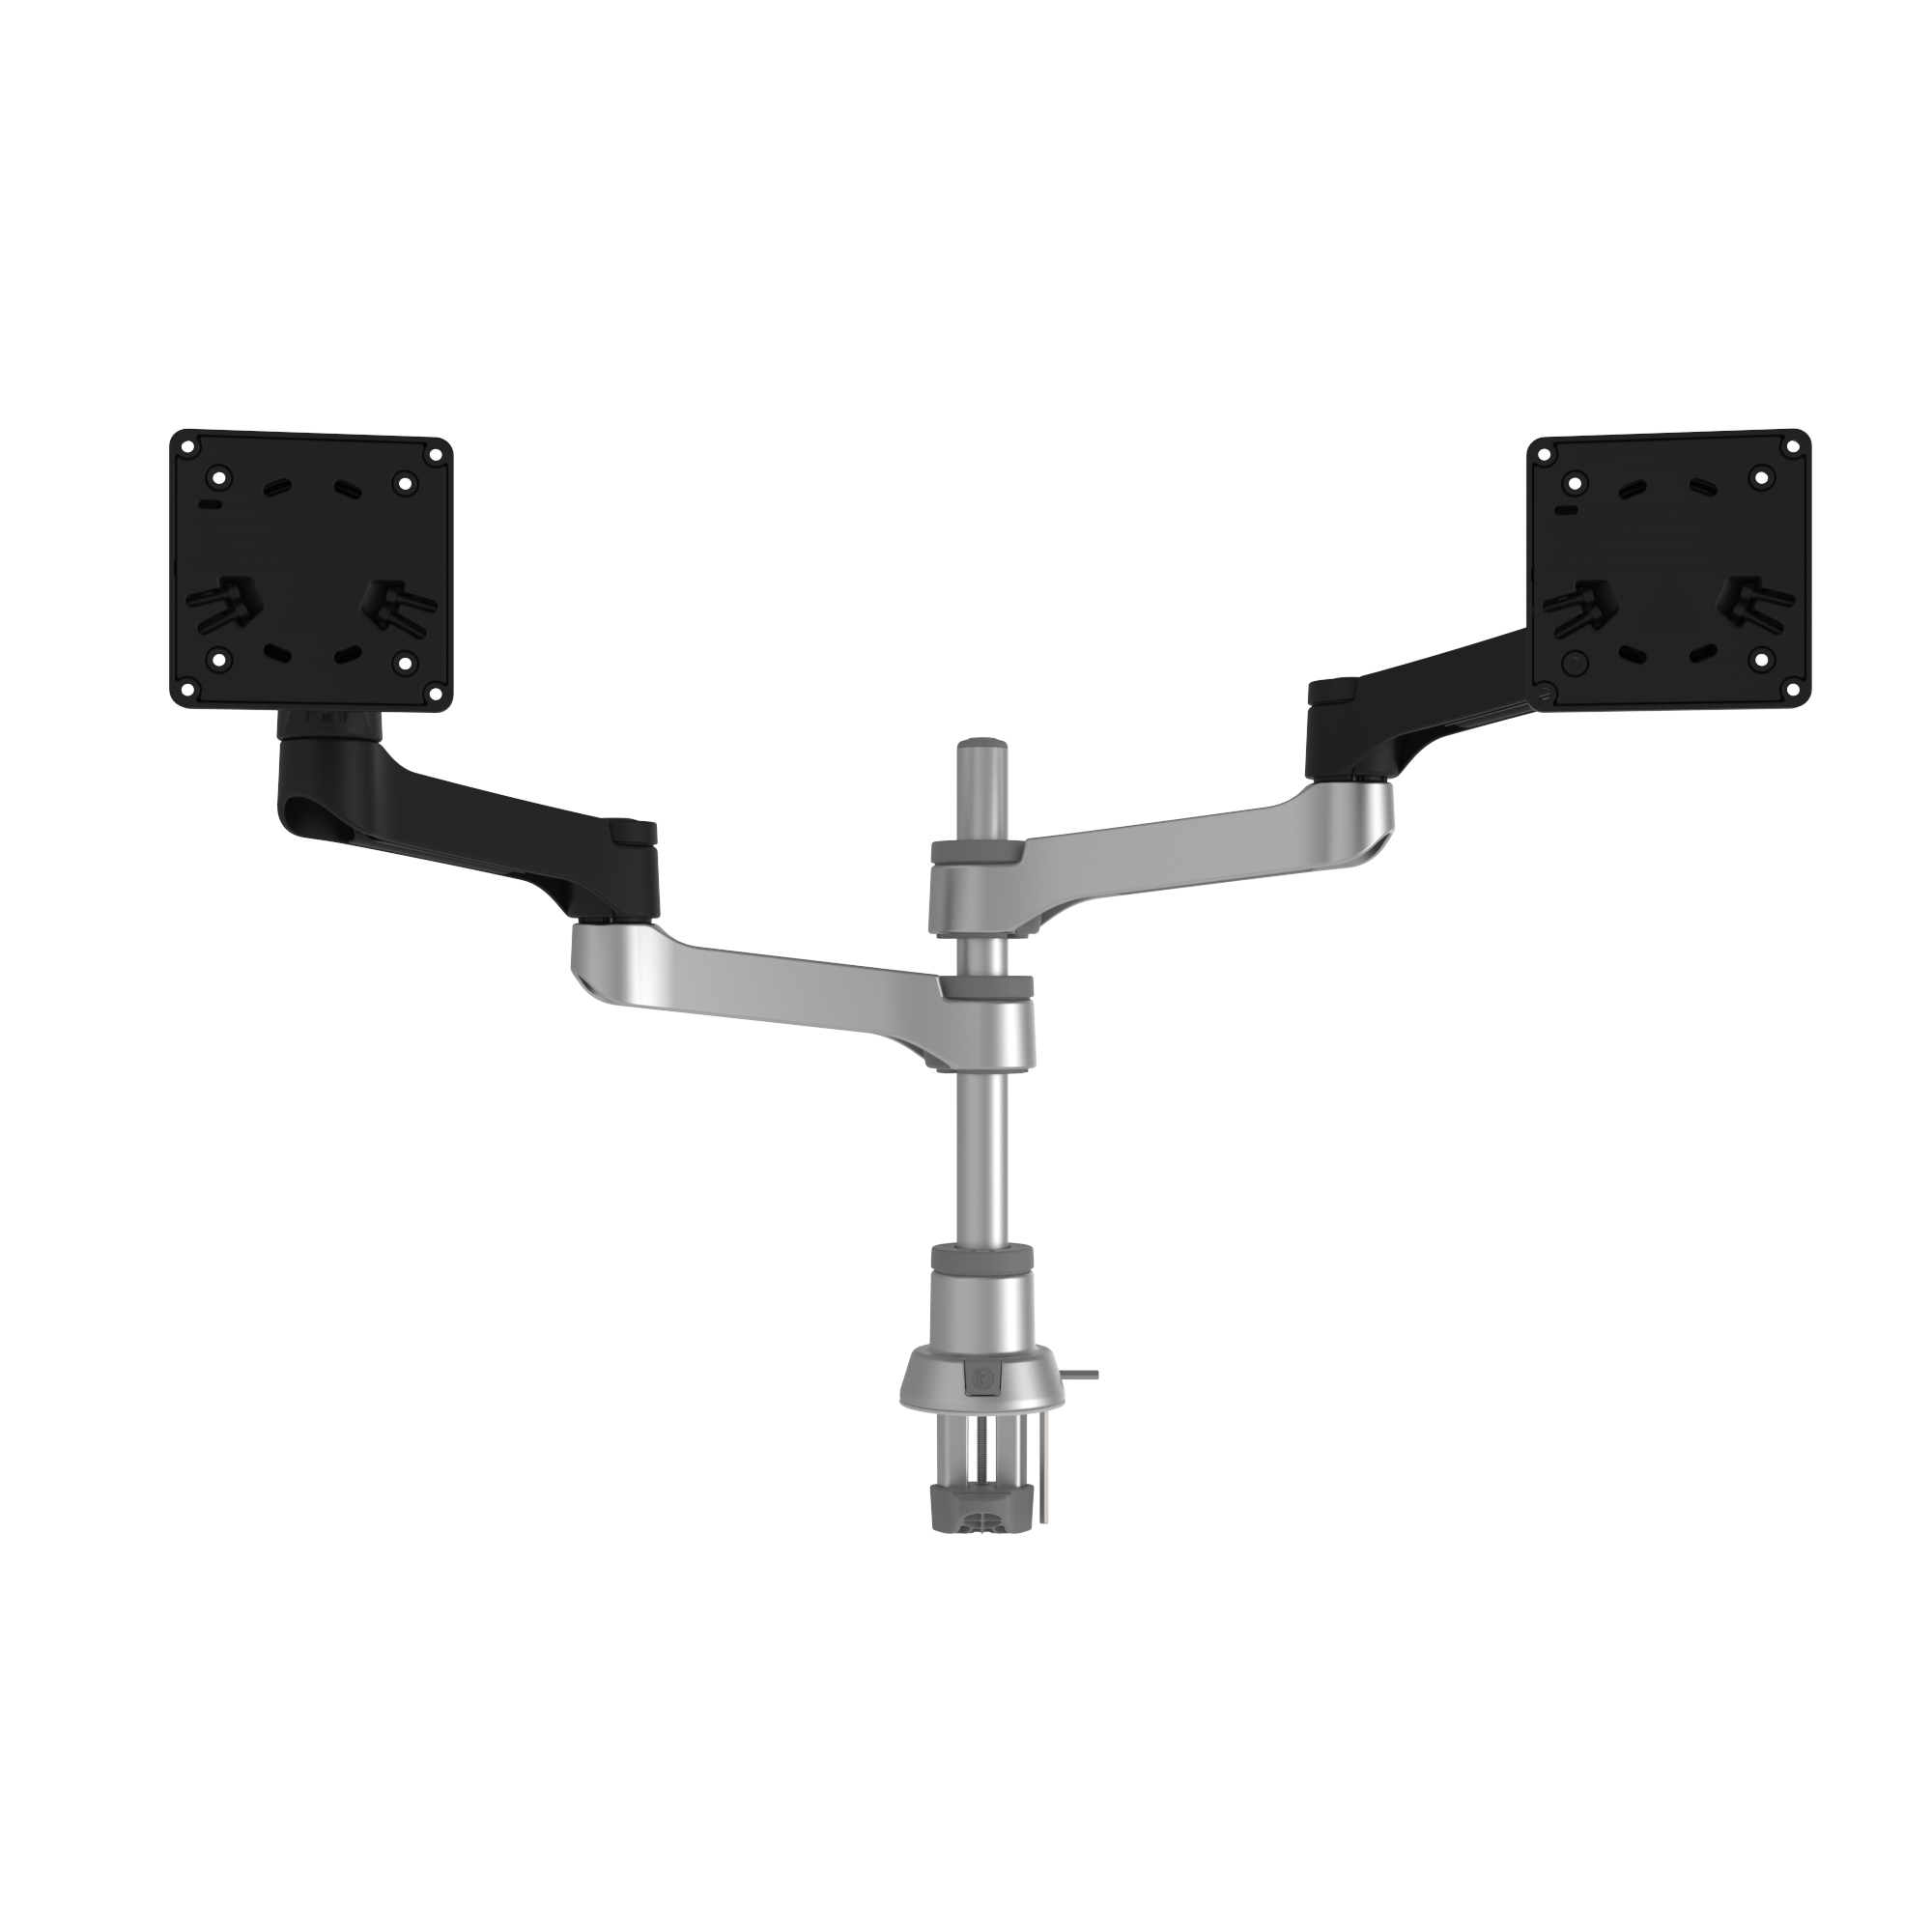 R-Go Zepher 4 C2, Circular Dual Monitor Arm, Desk Mount, Adjustable, 0-8 kg, Black-Silver, Low Carbon Footprint - 4